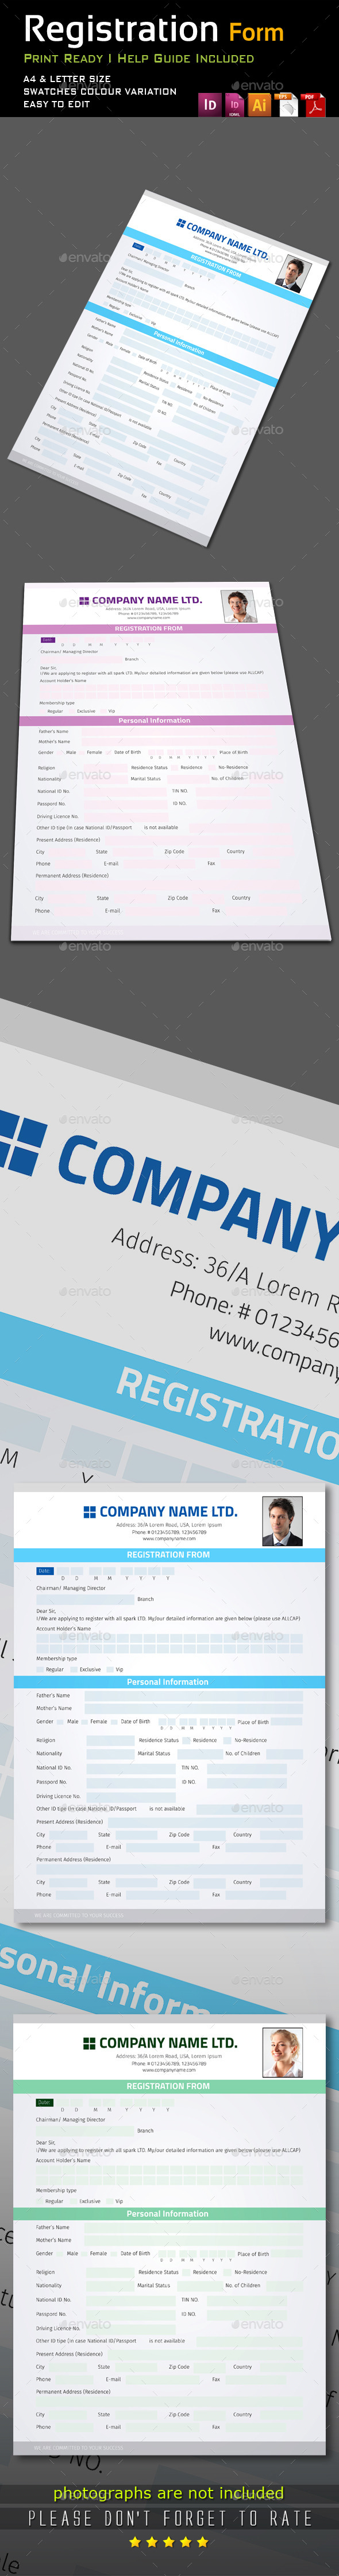 GraphicRiver Registration Form 9302958